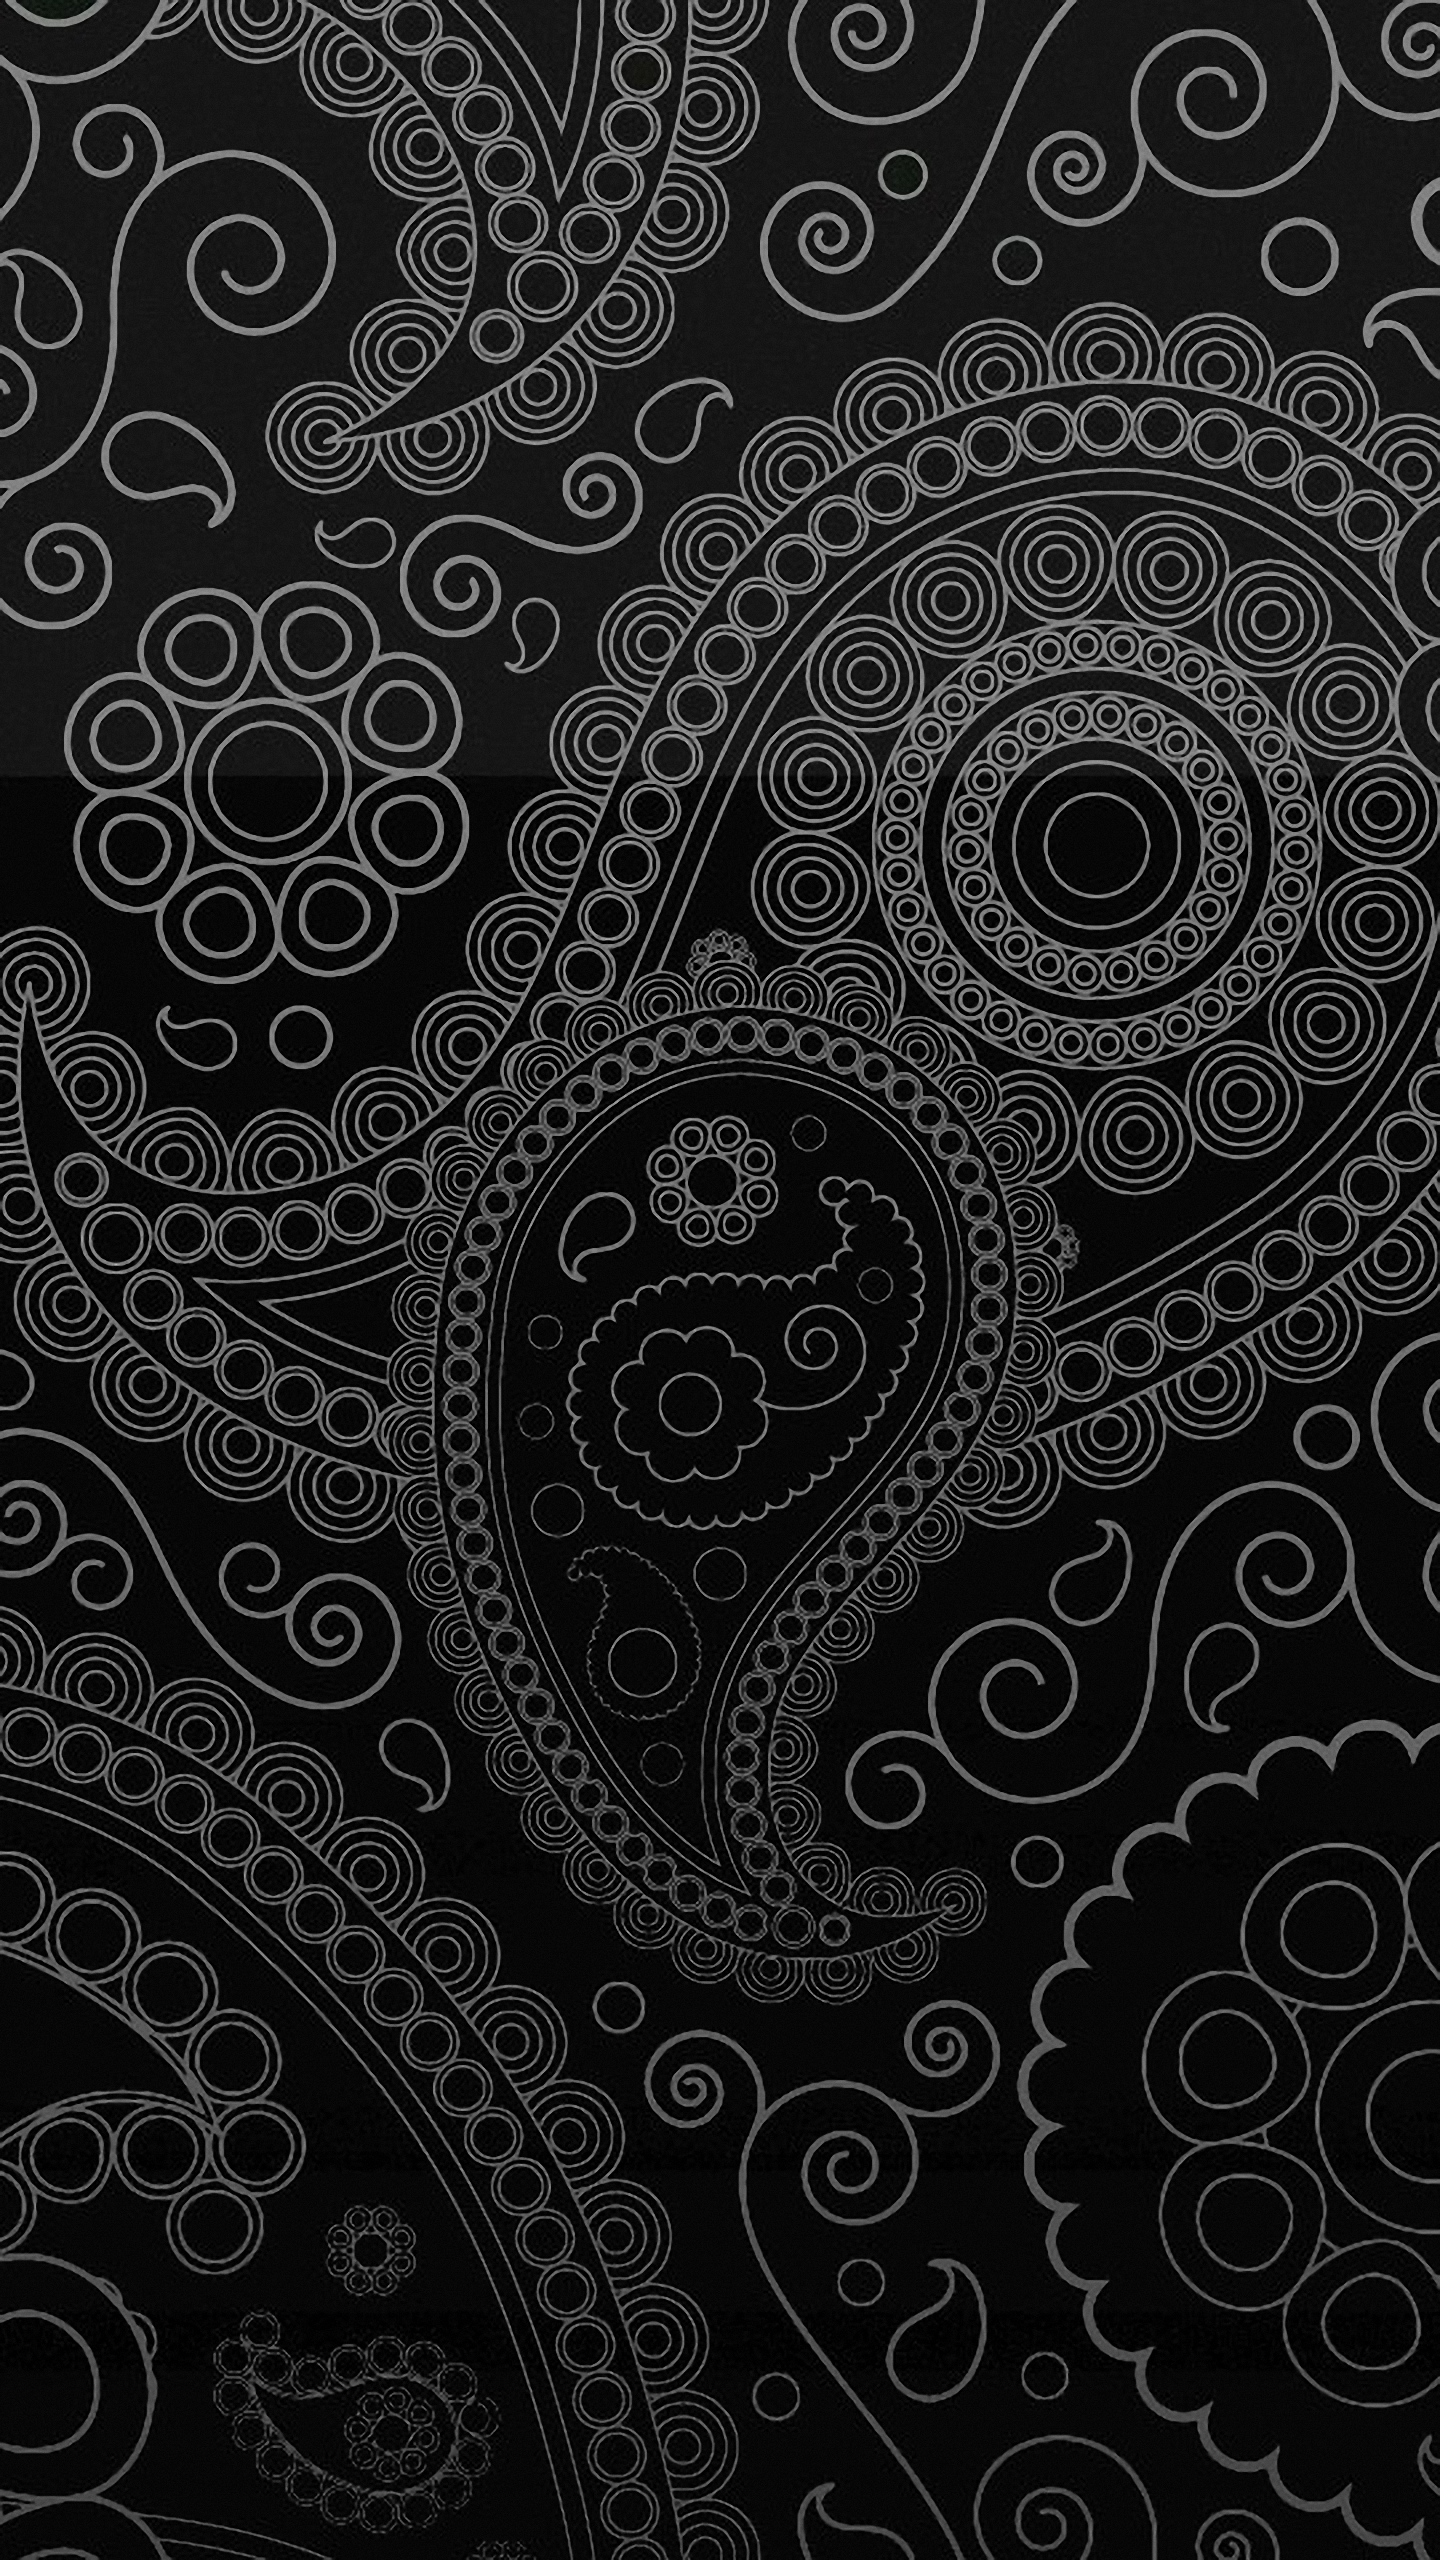 Hd wallpaper xiaomi - Hd Wallpaper Xiaomi Xiaomi Mi5 Hd 1440x2560 With A Pattern Xiaomi Mi5 Wallpapers